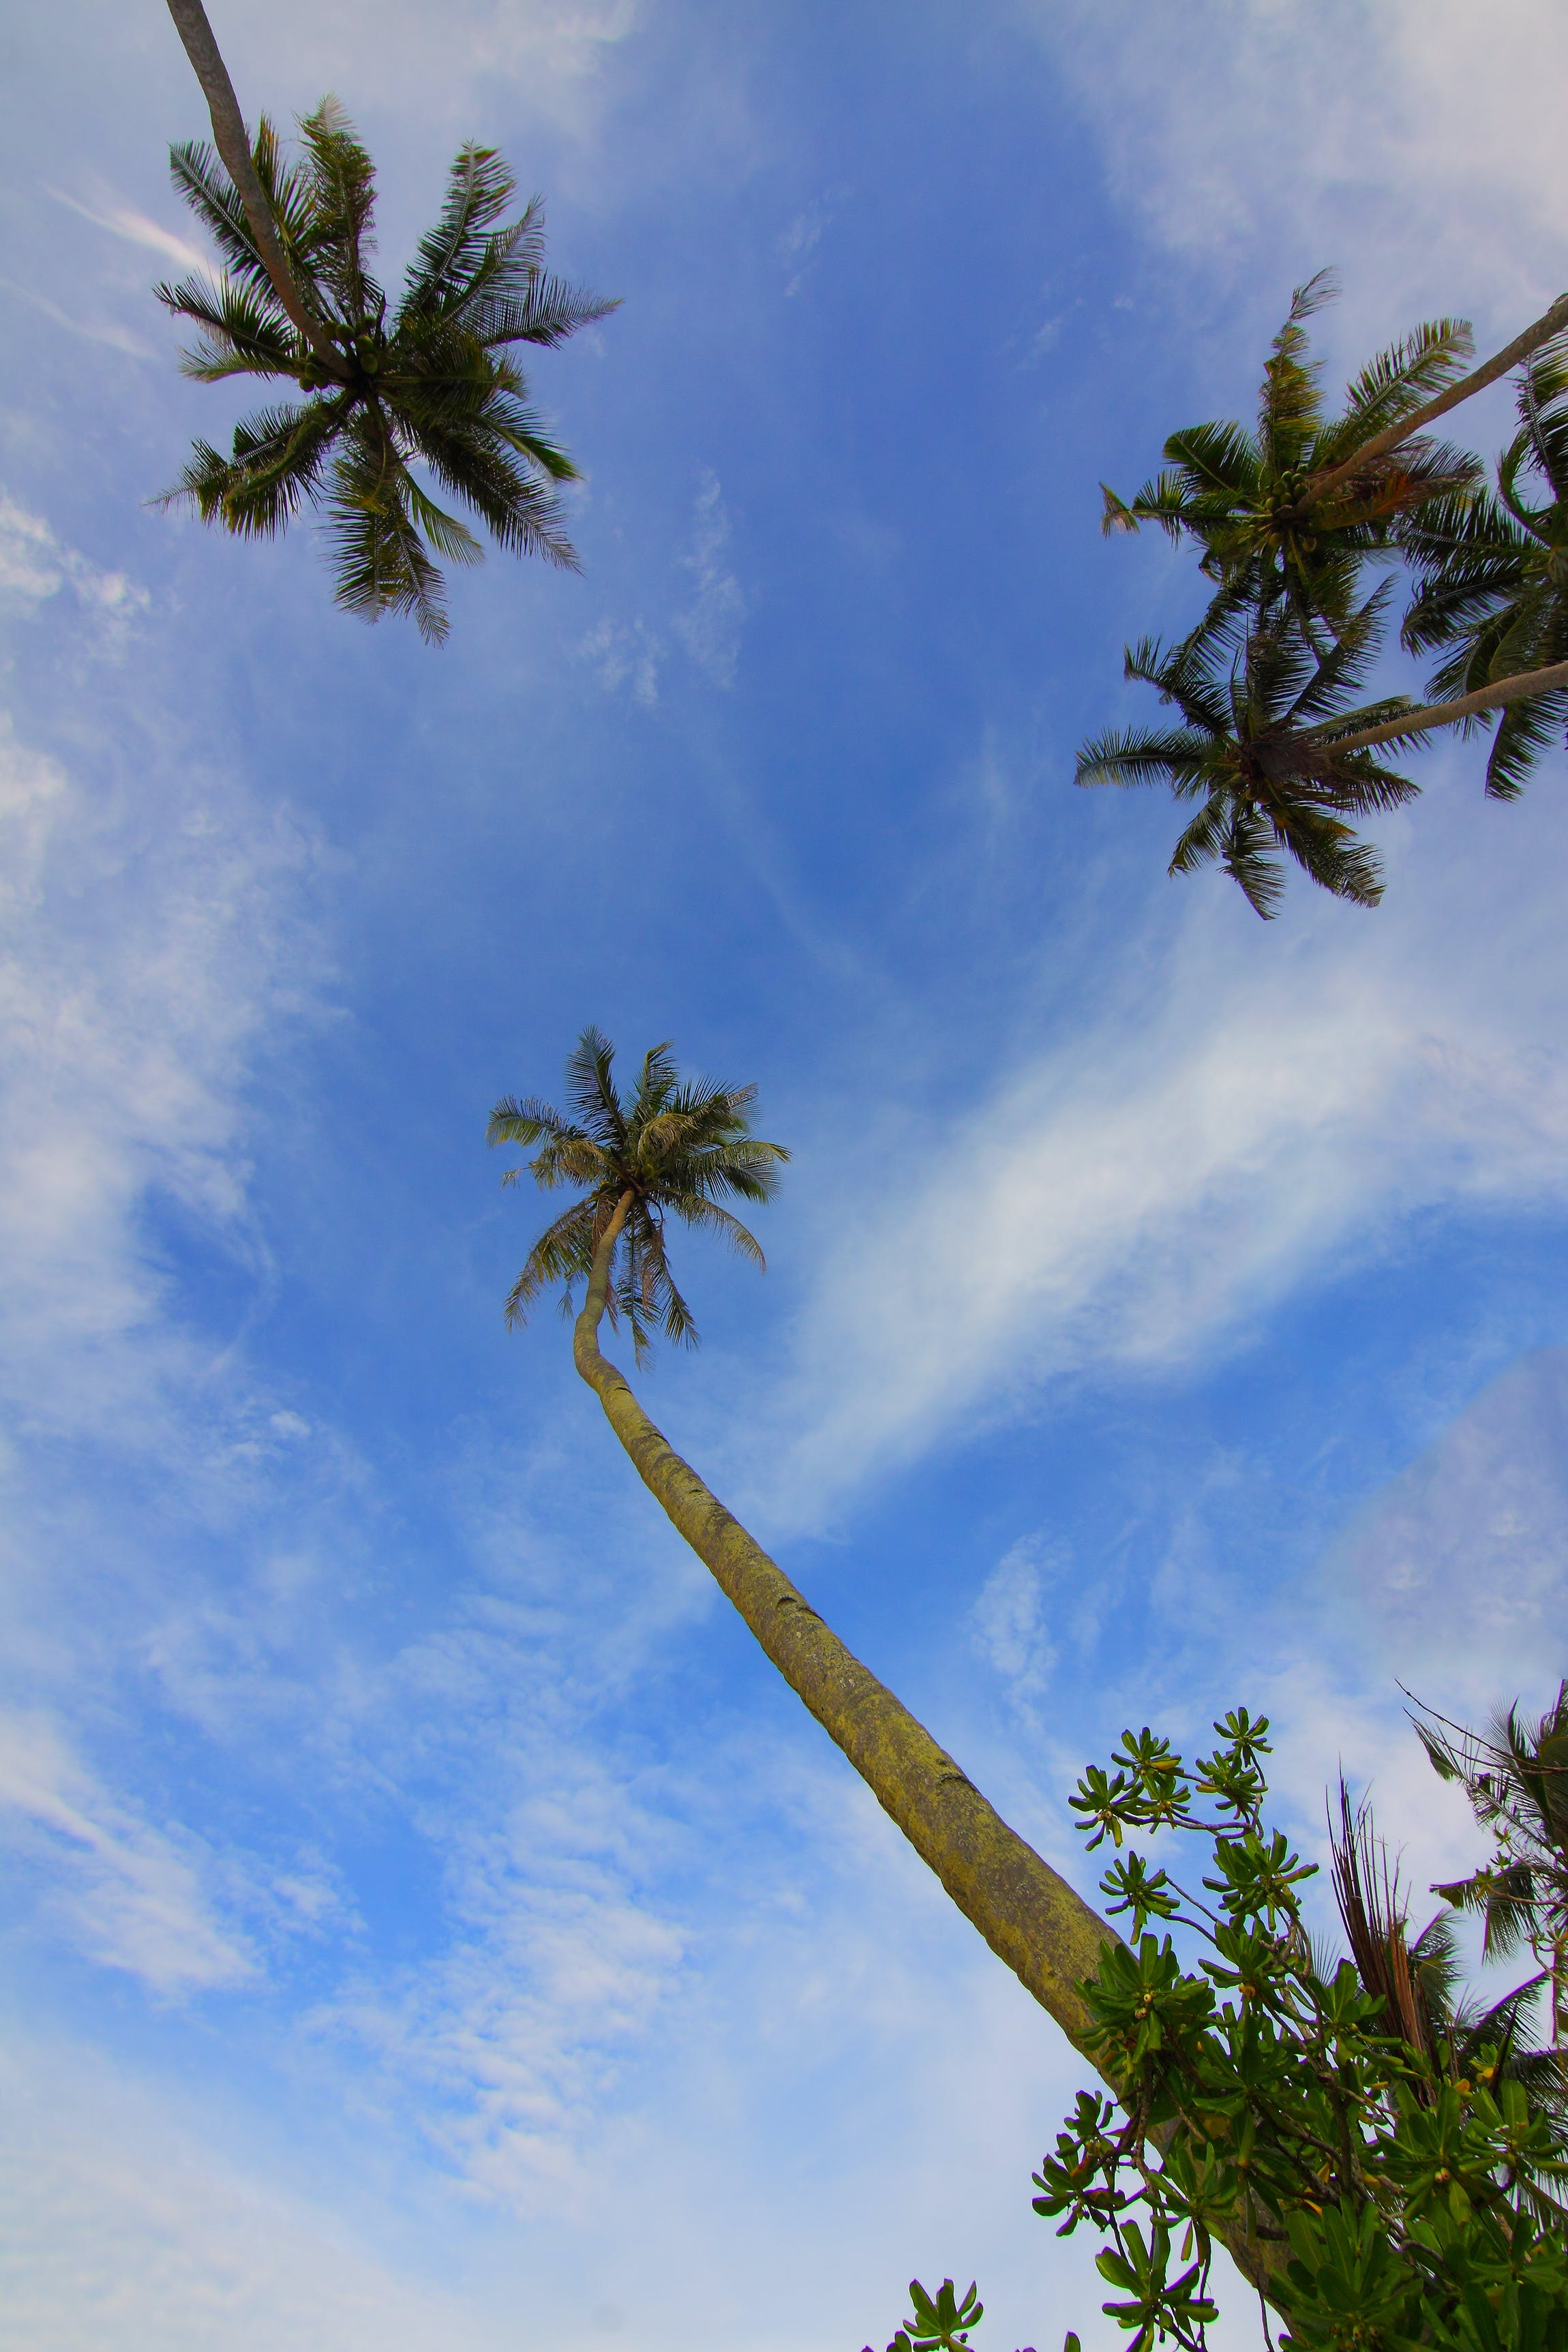 clouds, coconut trees, daylight